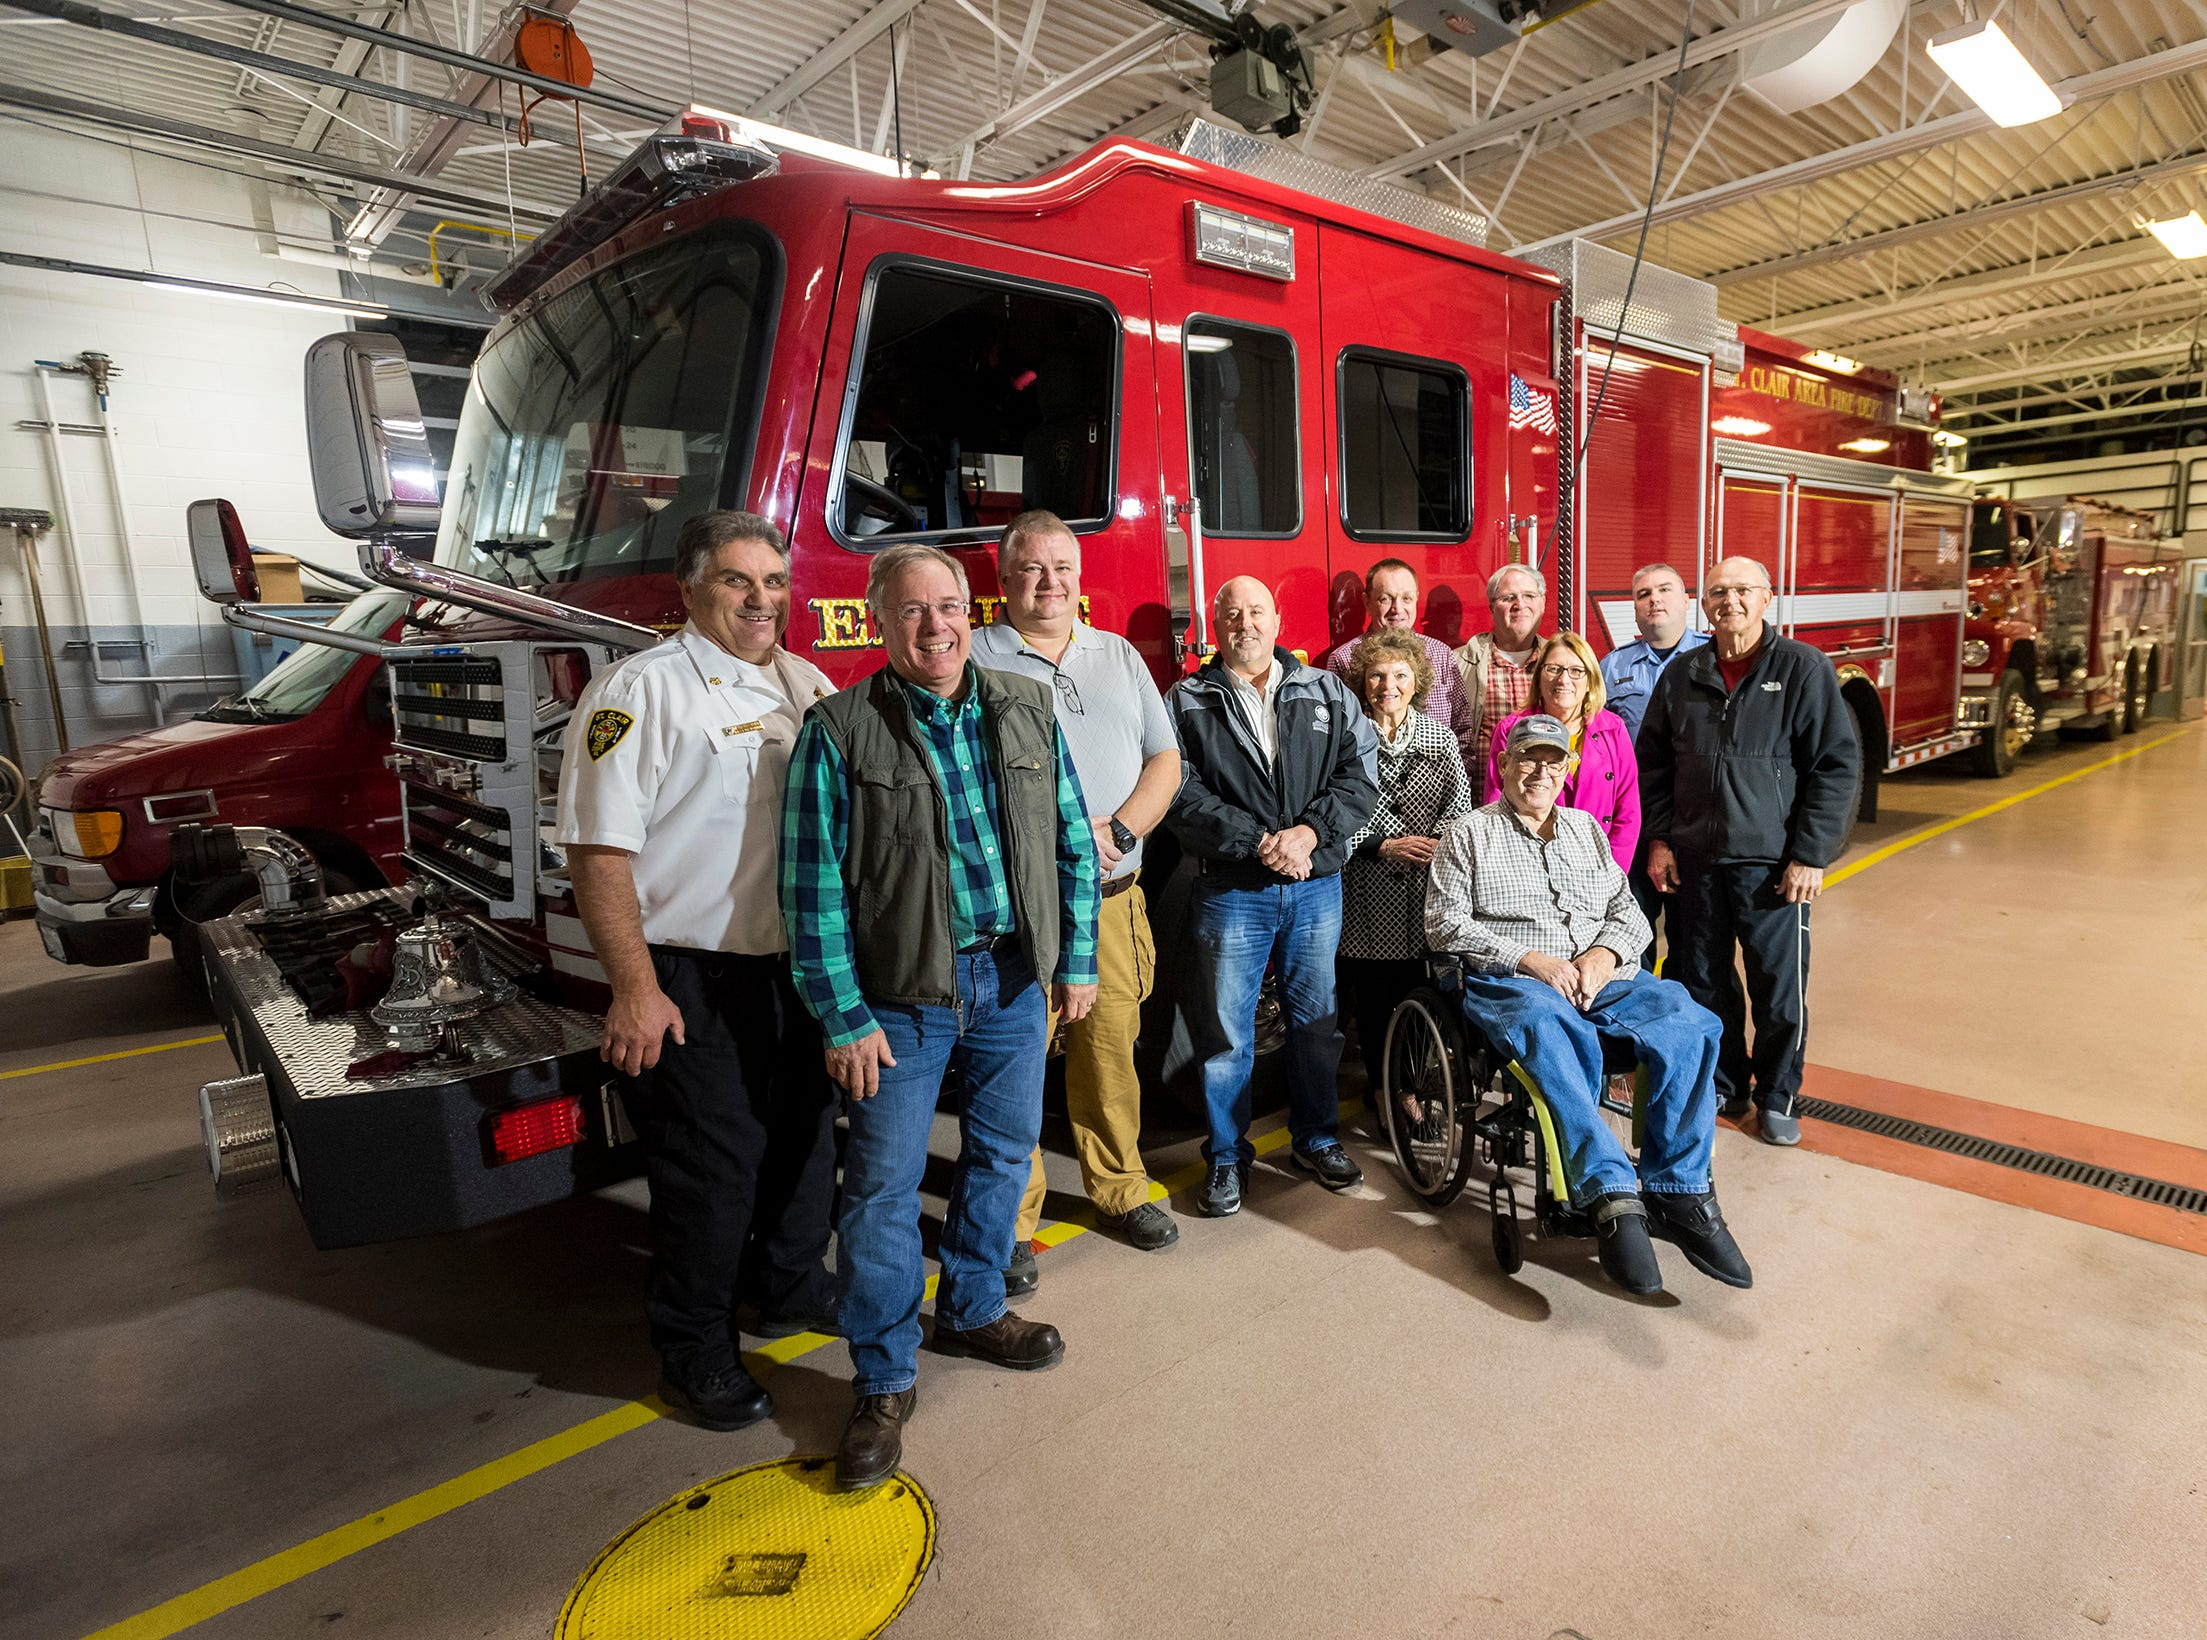 The St. Clair Area Fire Authority Board, pictured with the St. Clair Fire Department's new Rosenbauer pumper truck Wednesday, Nov. 7, 2018 in the fire station. The St. Clair Area Fire Authority began the design process for the truck about two years ago, and the customization process was handled by a committee within the fire authority. The department took possession of the truck in September and took it on its first run Monday.